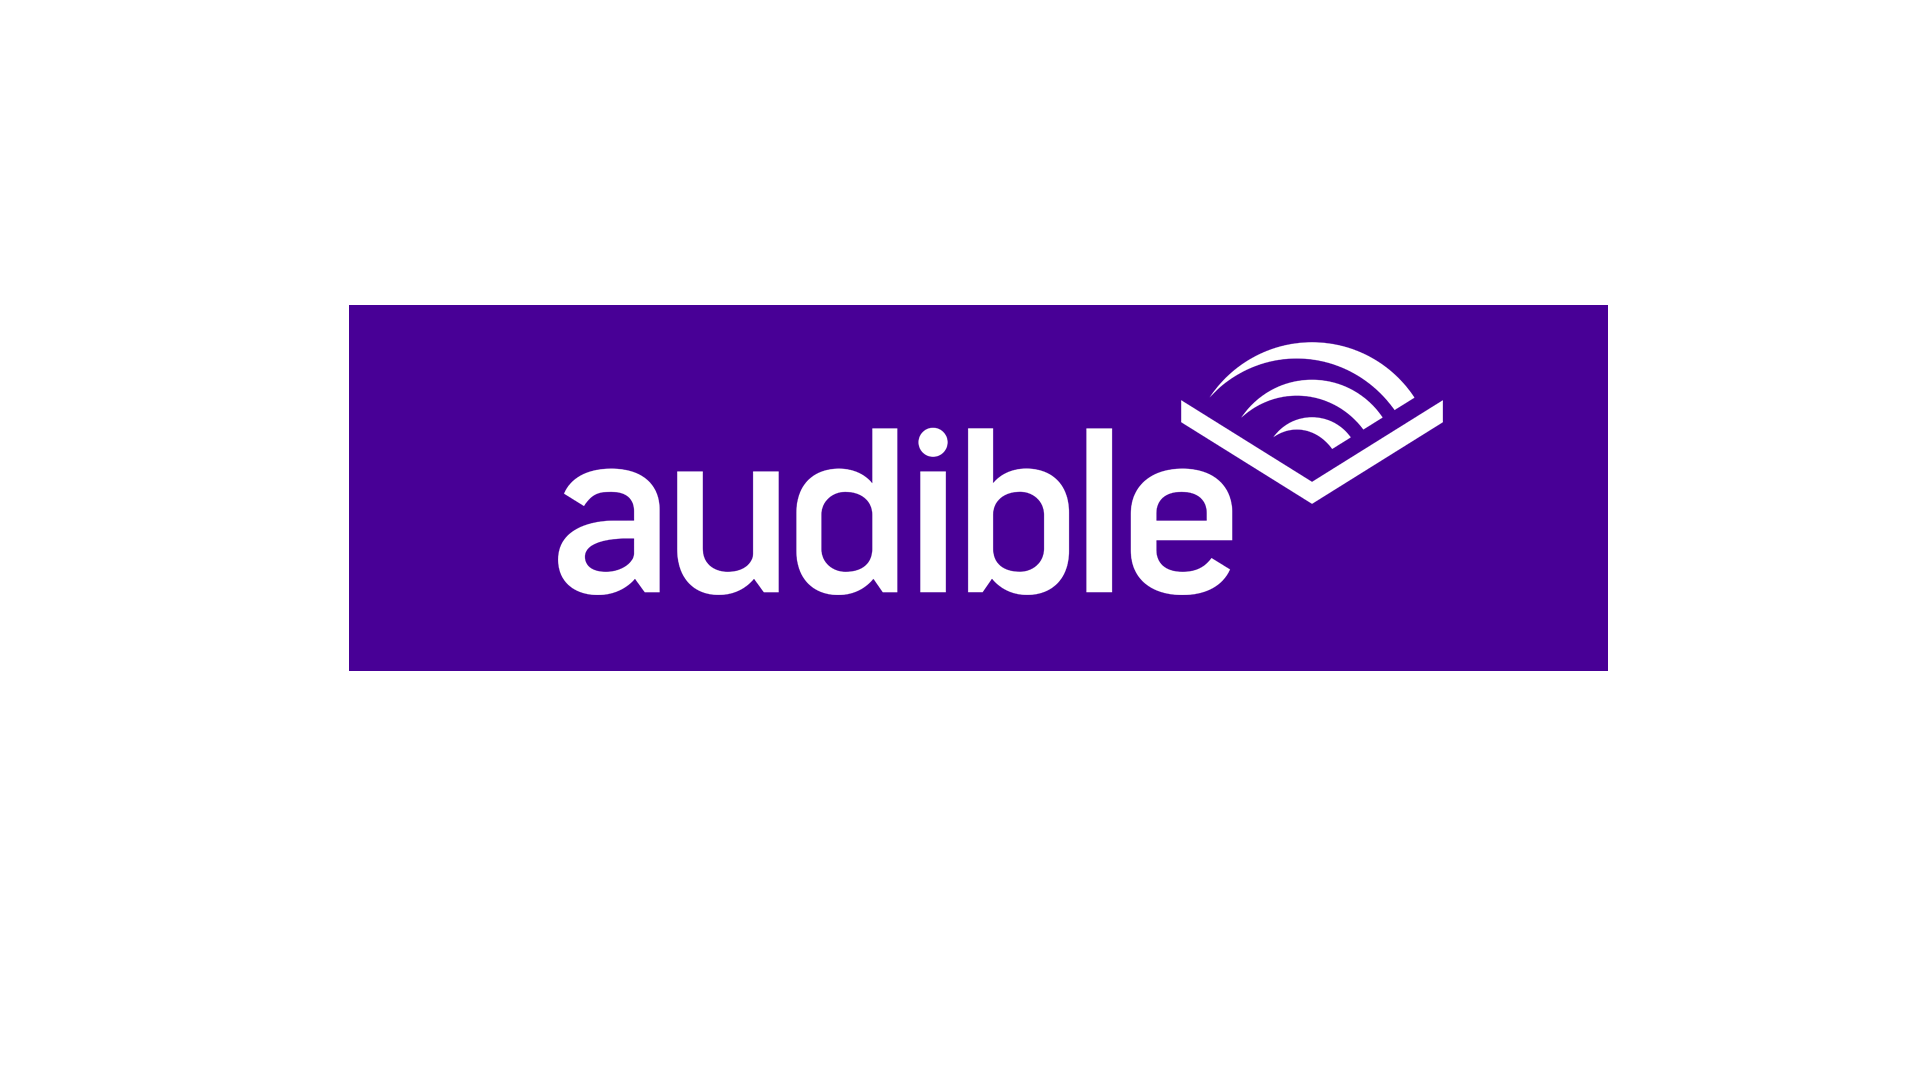 Caleb Kinchlow Parents Kids and Technology Audible Audio Book